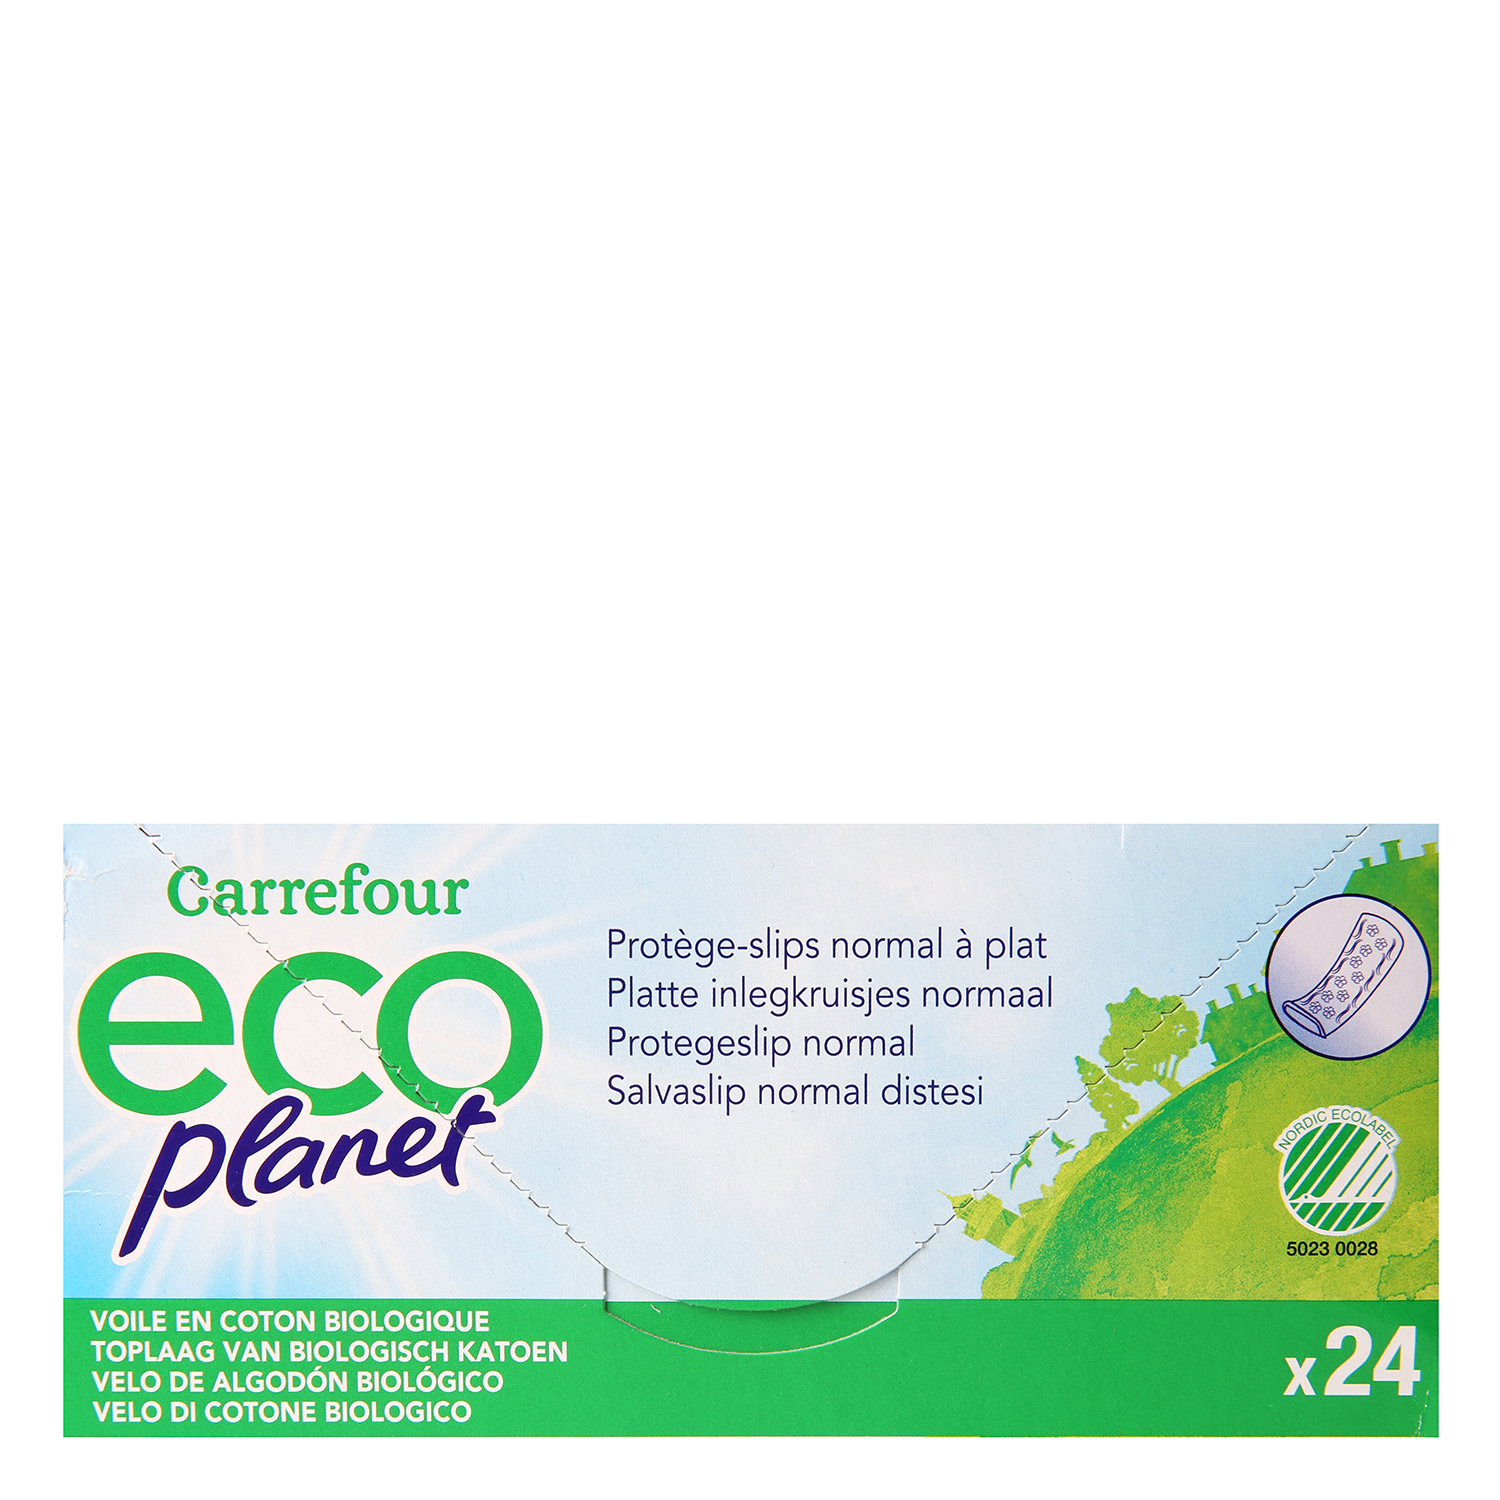 Protegeslip normal ecológico Carrefour Eco Planet 24 ud. - 2